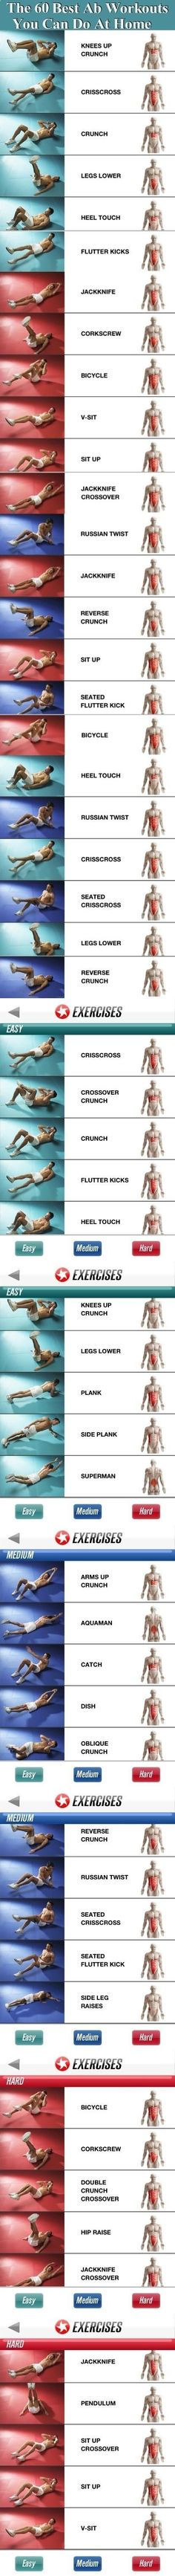 Belly Fat Workout - The 60 Best Ab Workouts You Can Do From Home Pictures, Photos, and Images for Facebook, Tumblr, Pinterest, and Twitter: Do This One Unusual 10-Minute Trick Before Work To Melt Away 15+ Pounds of Belly Fat #burnbellyfat